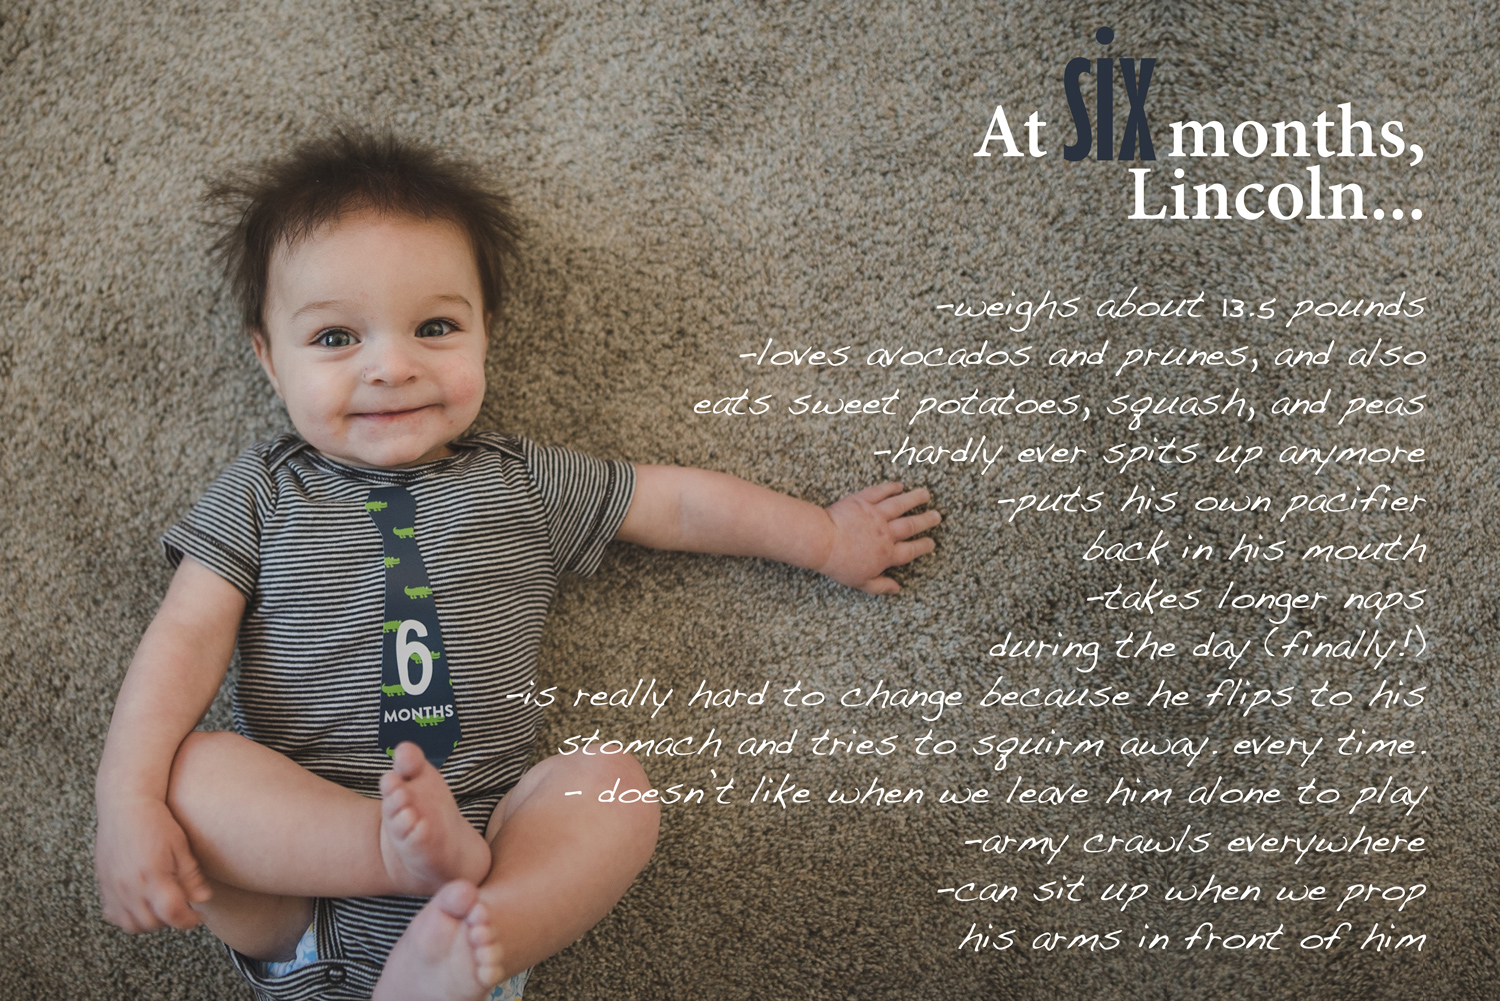 Baby Book image with text overlay, 6 month baby